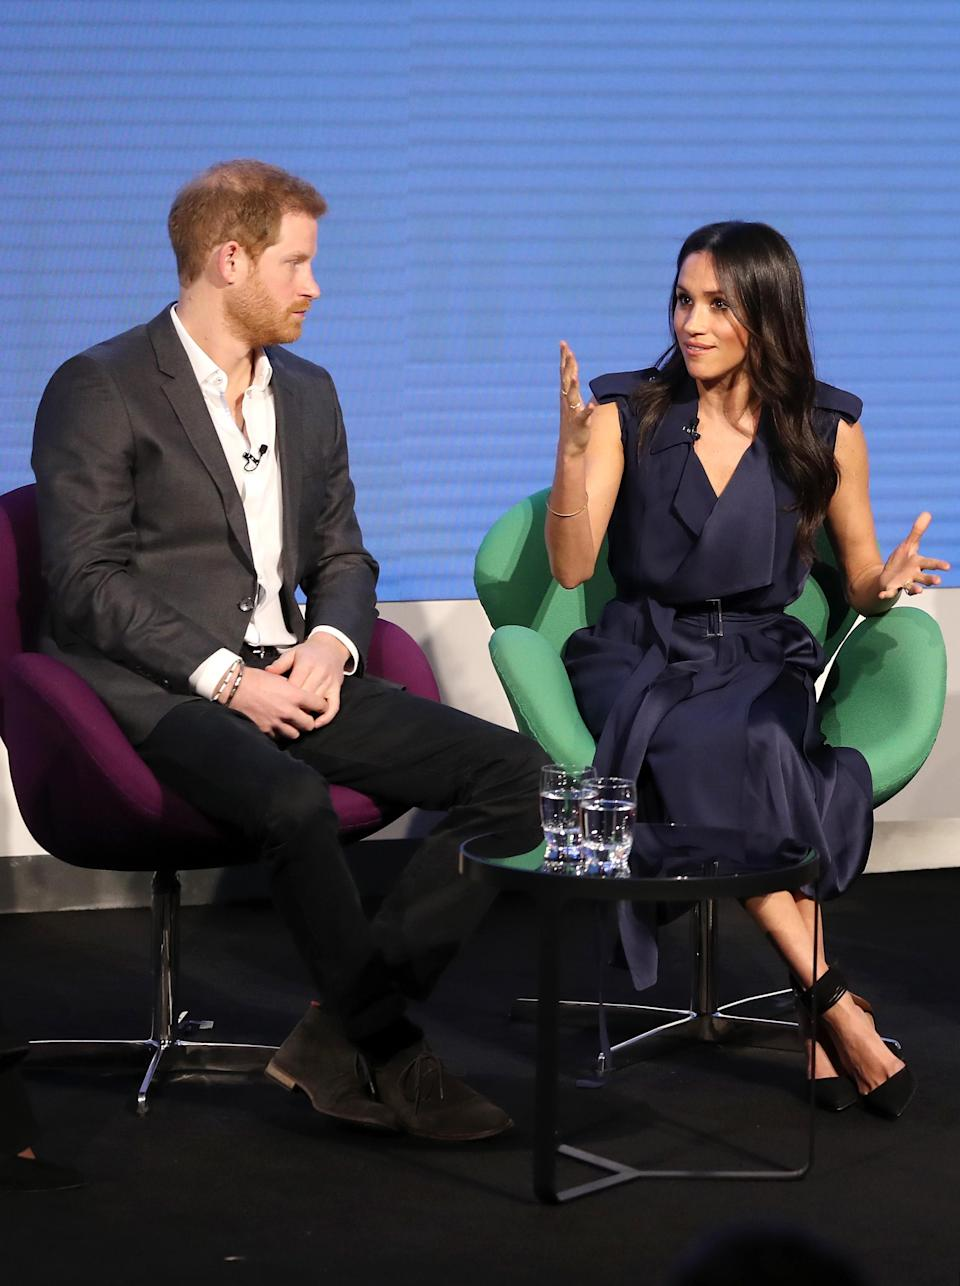 """<p>Despite it being freezing in London, Meghan chose a sleeveless, ruffle, crossover dress from designer Jason Wu to make her first official joint working debut alongside fiance Prince Harry and the Duke and Duchess of Cambridge. For those keen to follow in her simple yet trench-coat/dress style the frock is available from <a rel=""""nofollow noopener"""" href=""""https://www.net-a-porter.com/gb/en/product/992242/Jason_Wu/belted-satin-wrap-dress?cm_mmc=LinkshareUK-_-TnL5HPStwNw-_-Custom-_-LinkBuilder&siteID=TnL5HPStwNw-gW1BQbtWsH1zKzmeY4xftg&Skimlinks.com=Skimlinks.com"""" target=""""_blank"""" data-ylk=""""slk:Net-a-Porter"""" class=""""link rapid-noclick-resp"""">Net-a-Porter</a> for an eye watering £1415. </p>"""